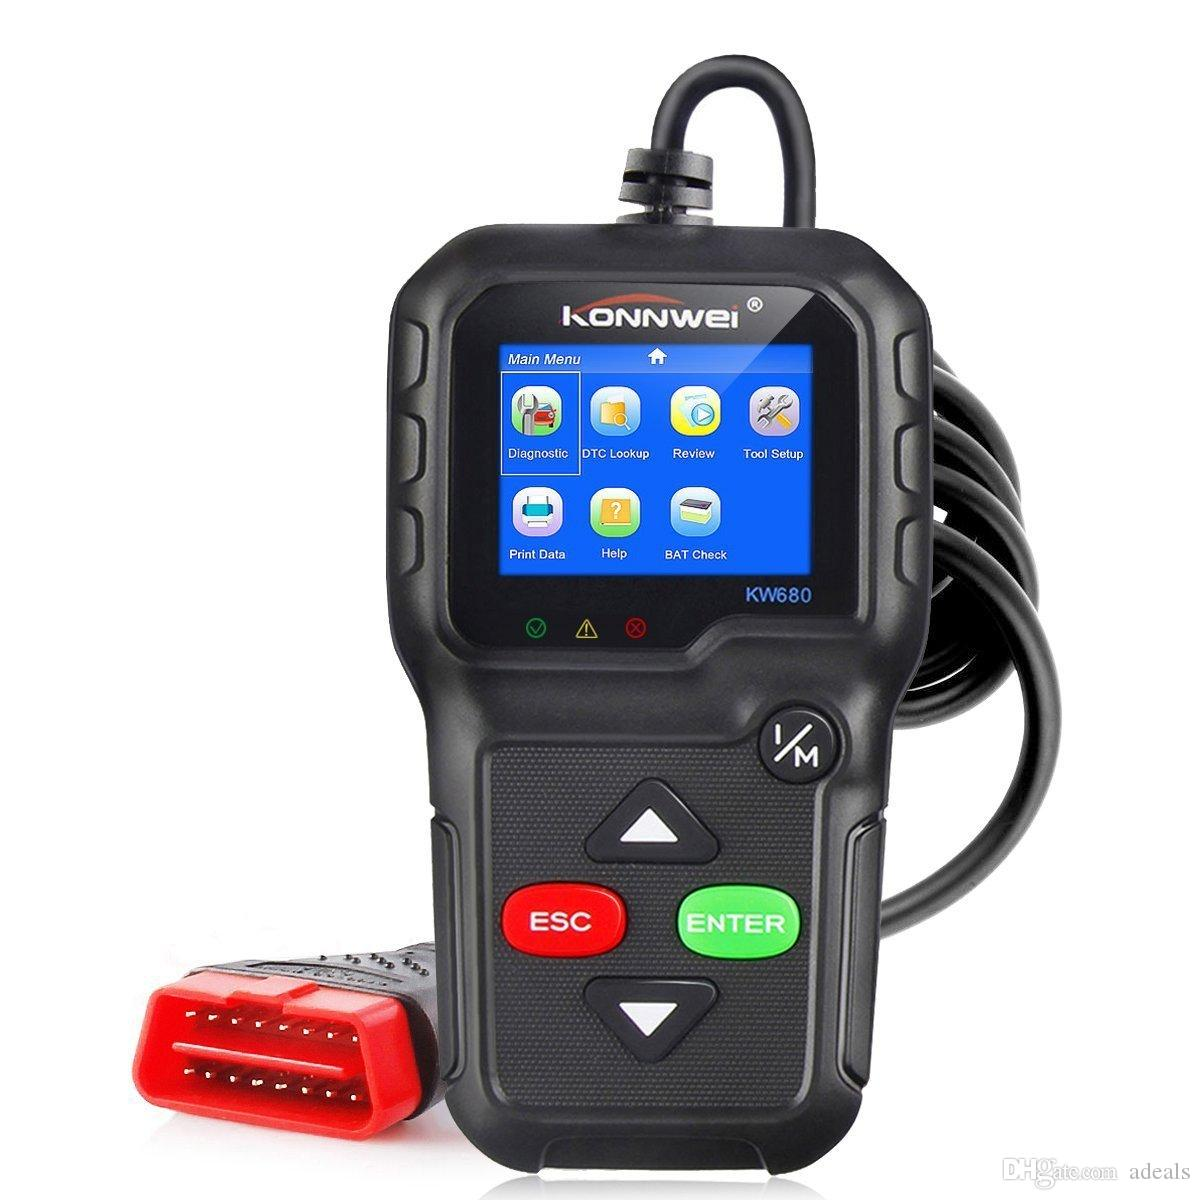 Automotive Scan Tool >> 2019 Obd 2 Odb 2 Automotive Scanner Kw680 Full Obd2 Function Odb 2 Diagnostic Tool In Russian Portuguese Car Diagnosis Scanner From Adeals 316 81